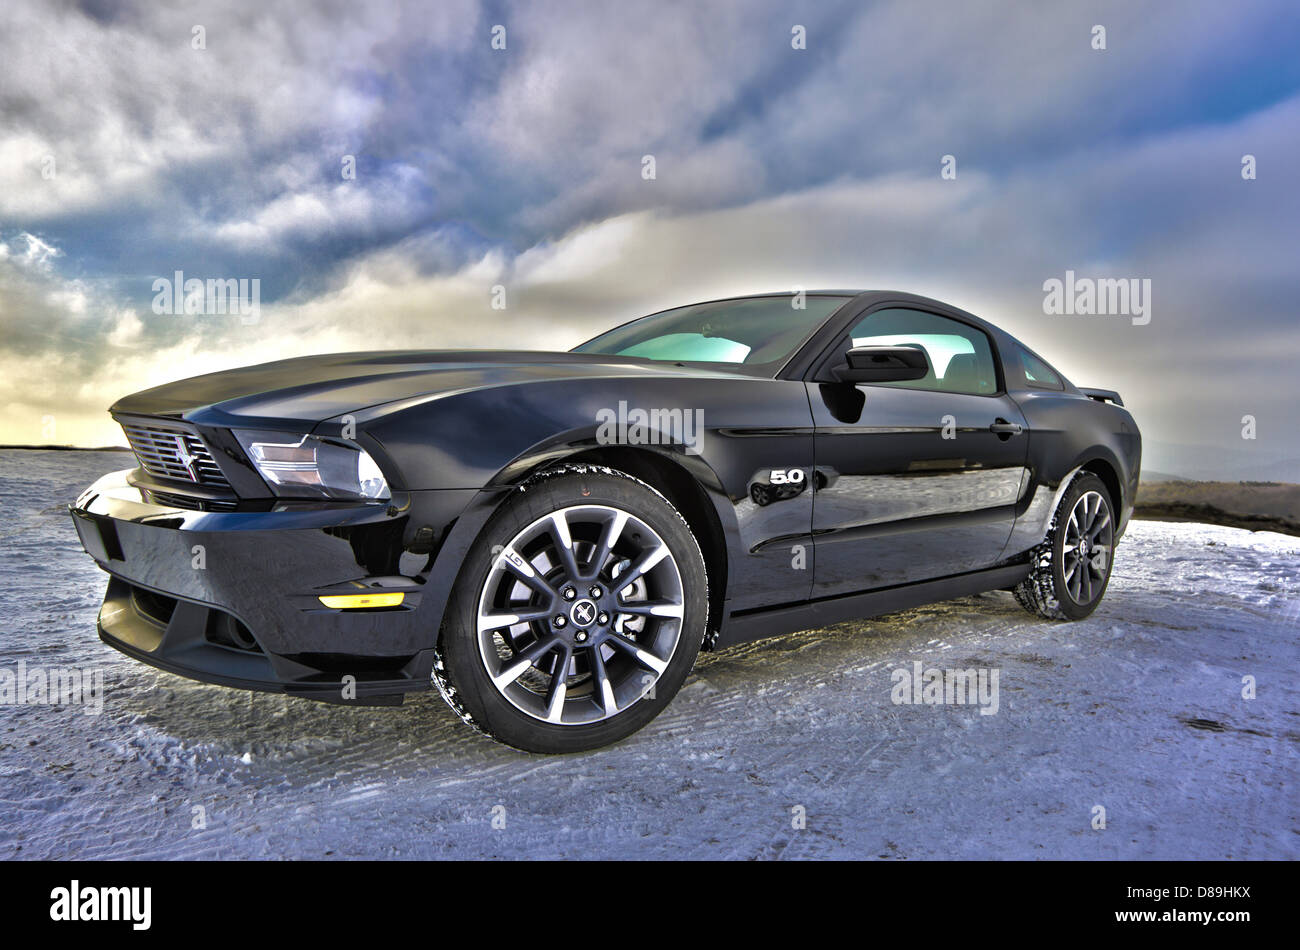 ford mustang car auto muscle us-car sport coupe - Stock Image